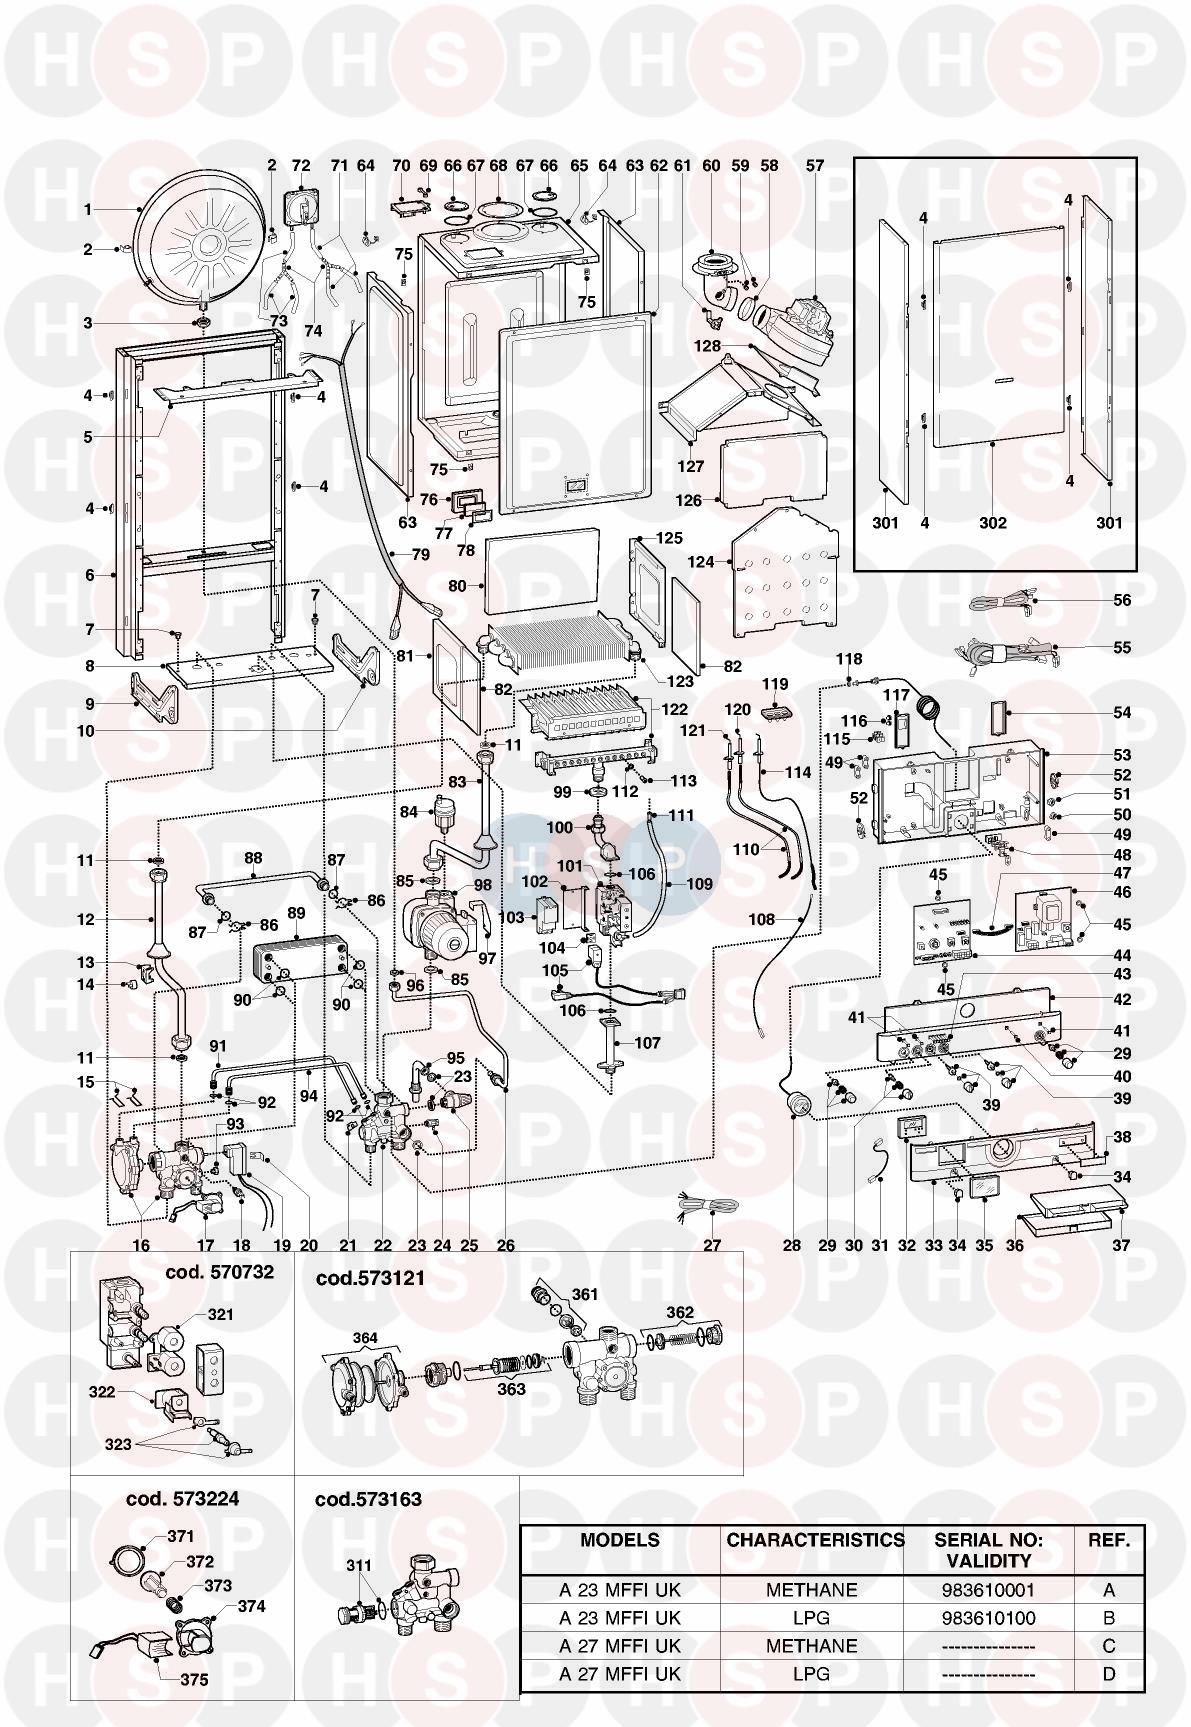 Ariston EUROCOMBI A23 MFFI EDITION2 Appliance Diagram